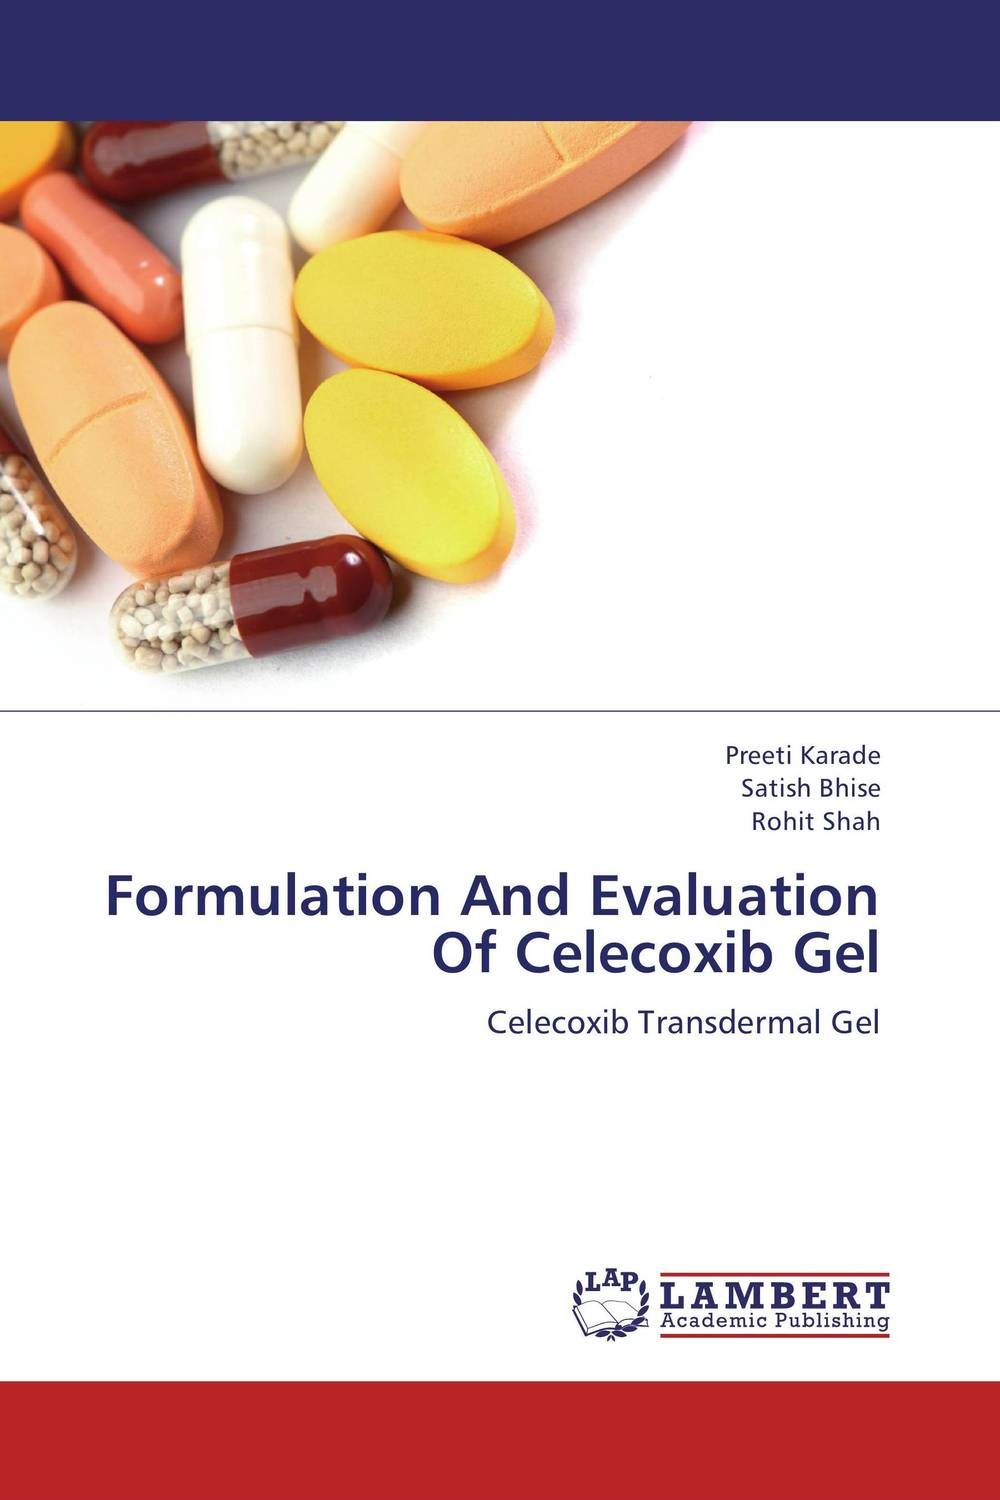 Formulation And Evaluation Of Celecoxib Gel design and evaluation of microemulsion gel system of nadifloxacin